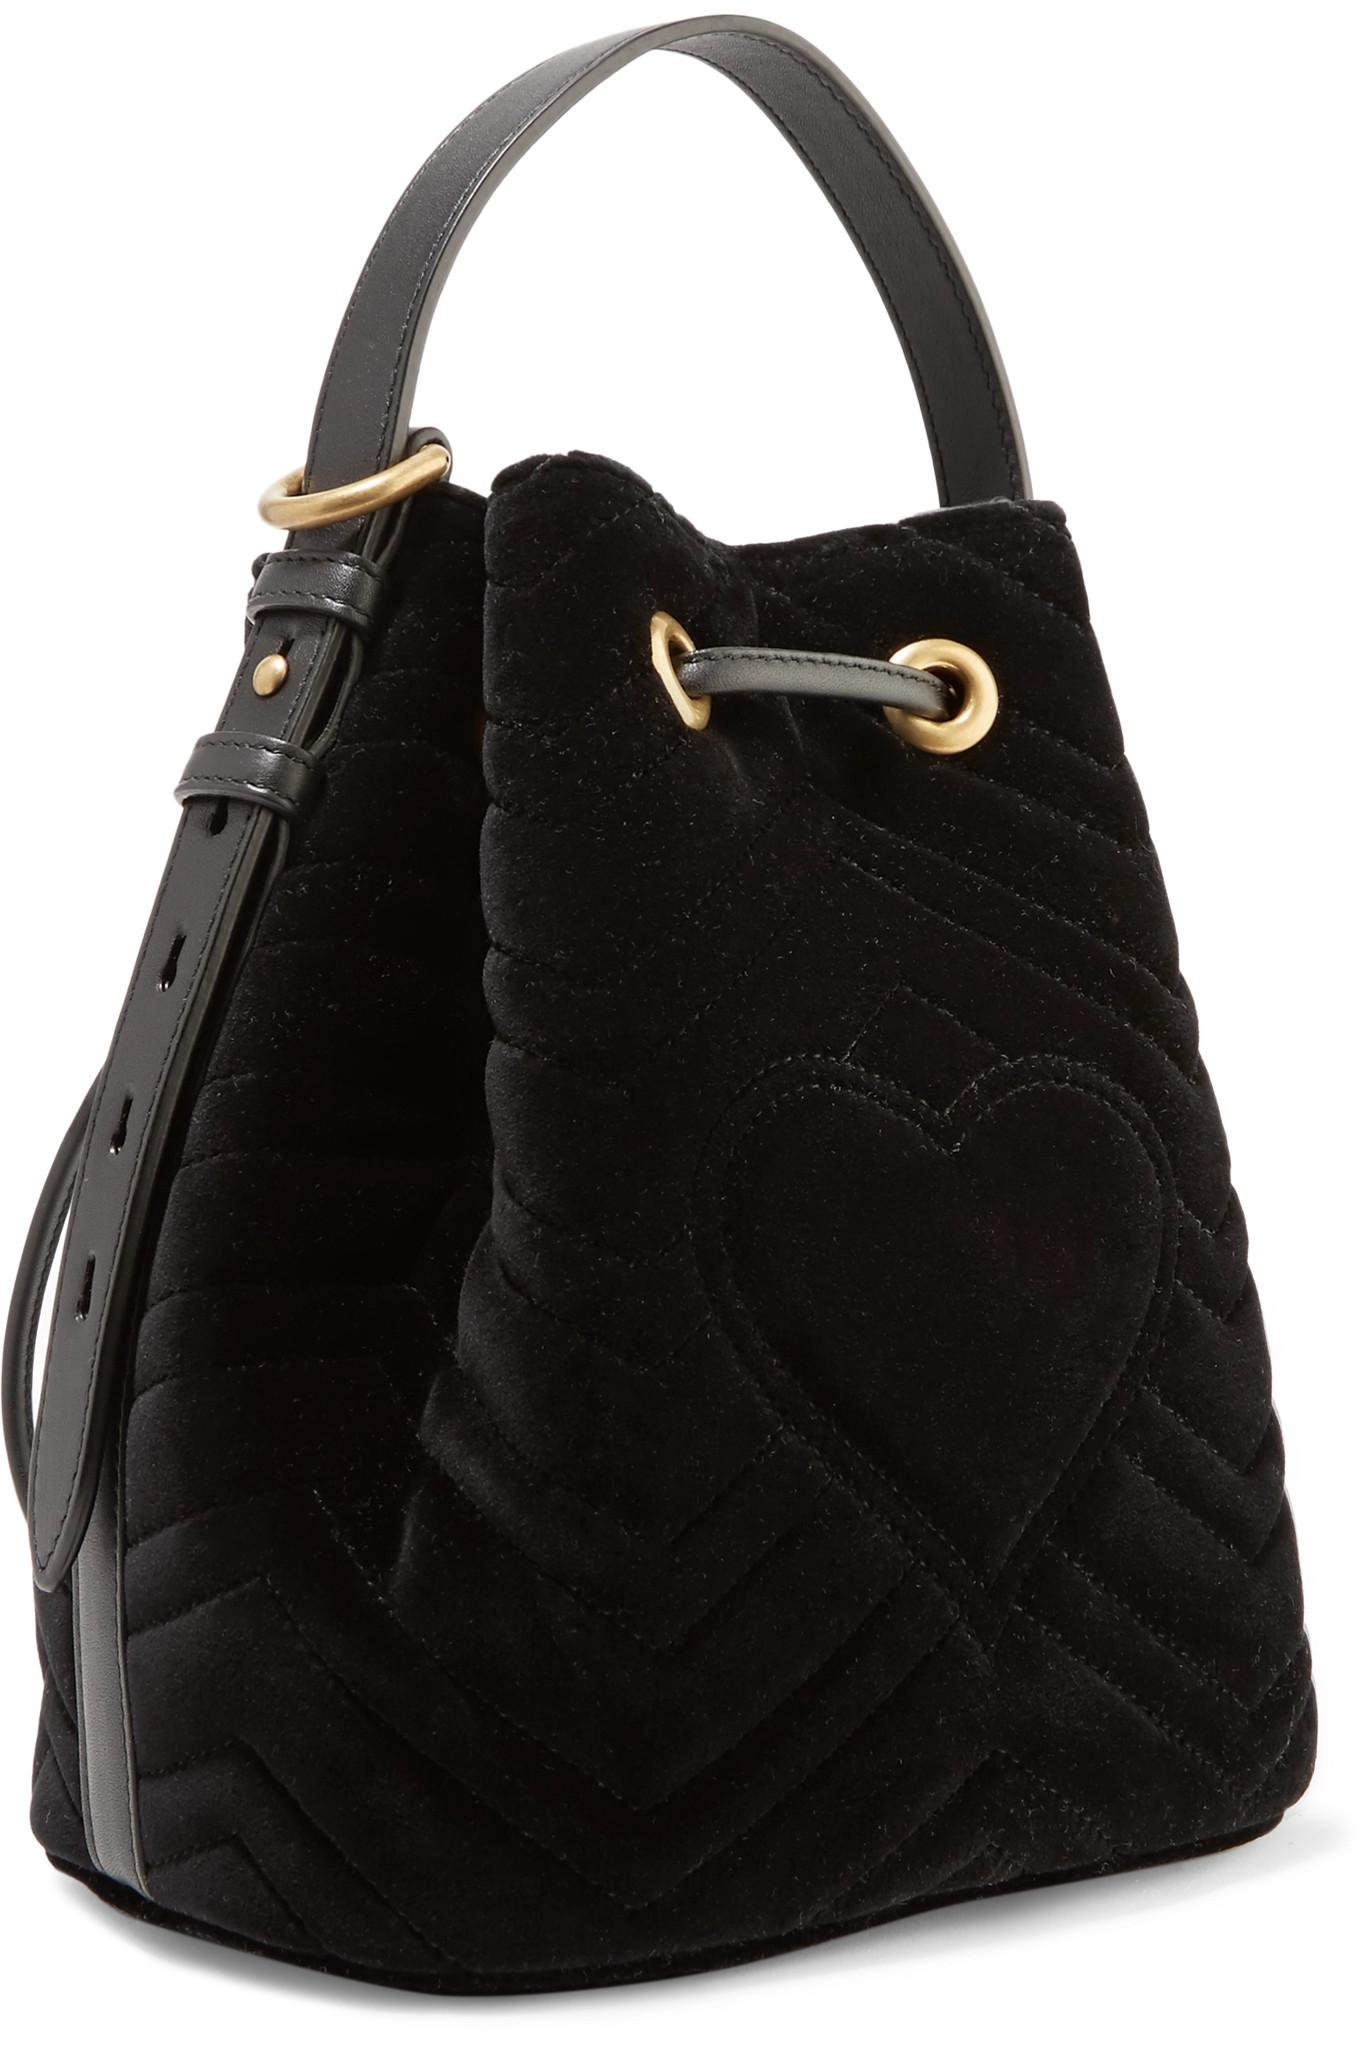 967e6e58c27 Gucci - Black Gg Marmont Leather-trimmed Quilted Velvet Bucket Bag - Lyst.  View fullscreen